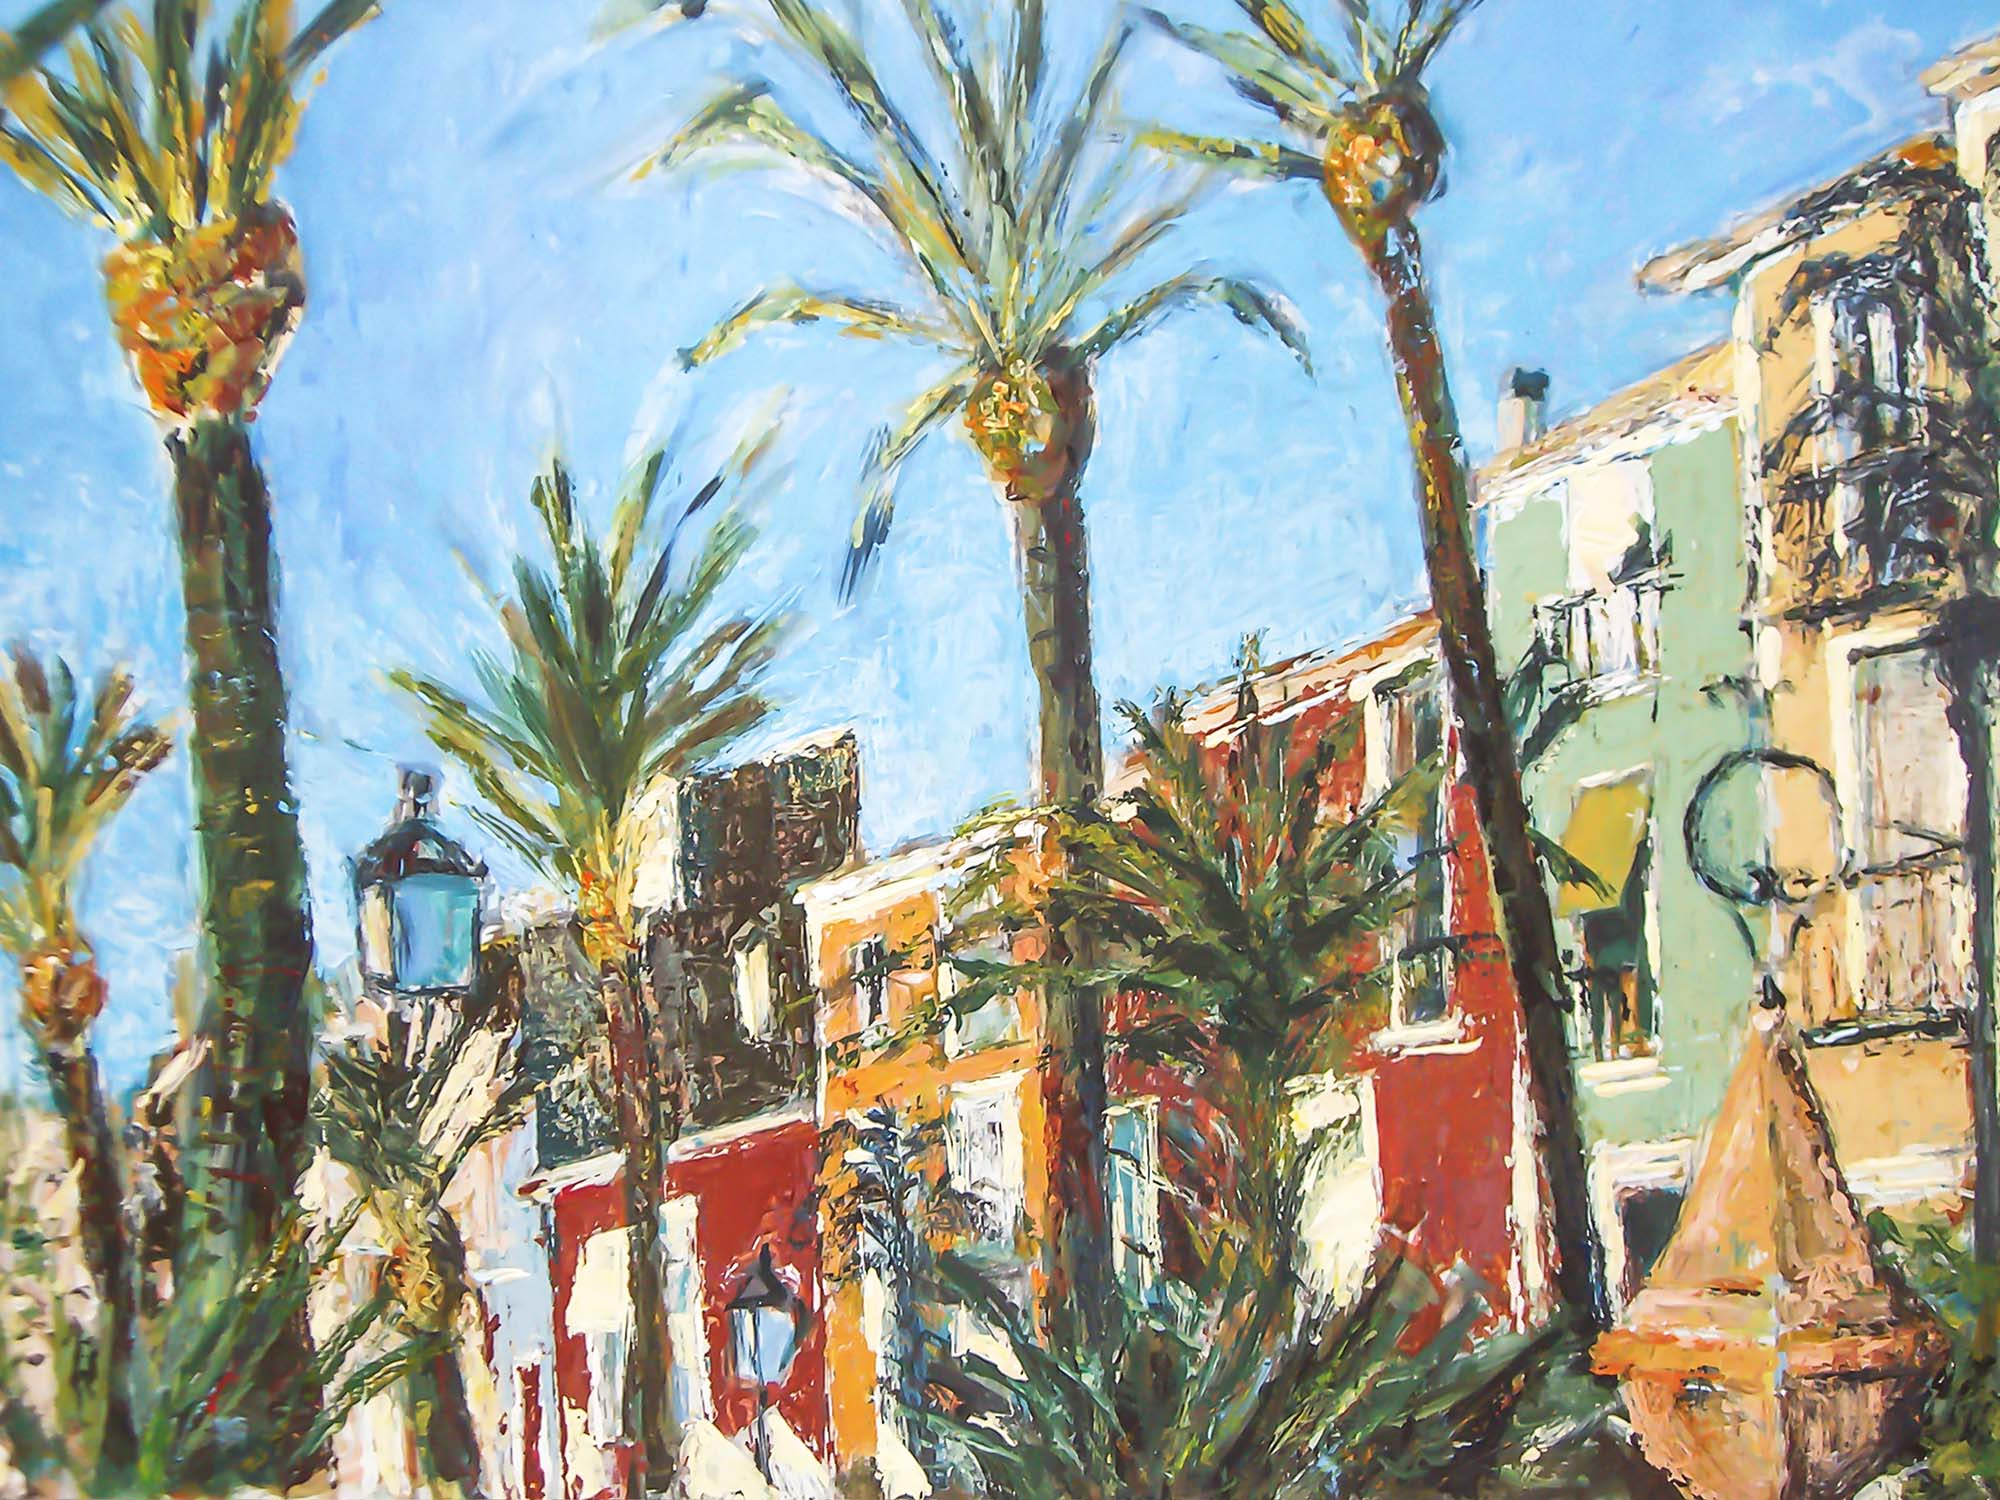 Spanish street with palm trees in Villajoyosa, Spain by Ria Kieboom